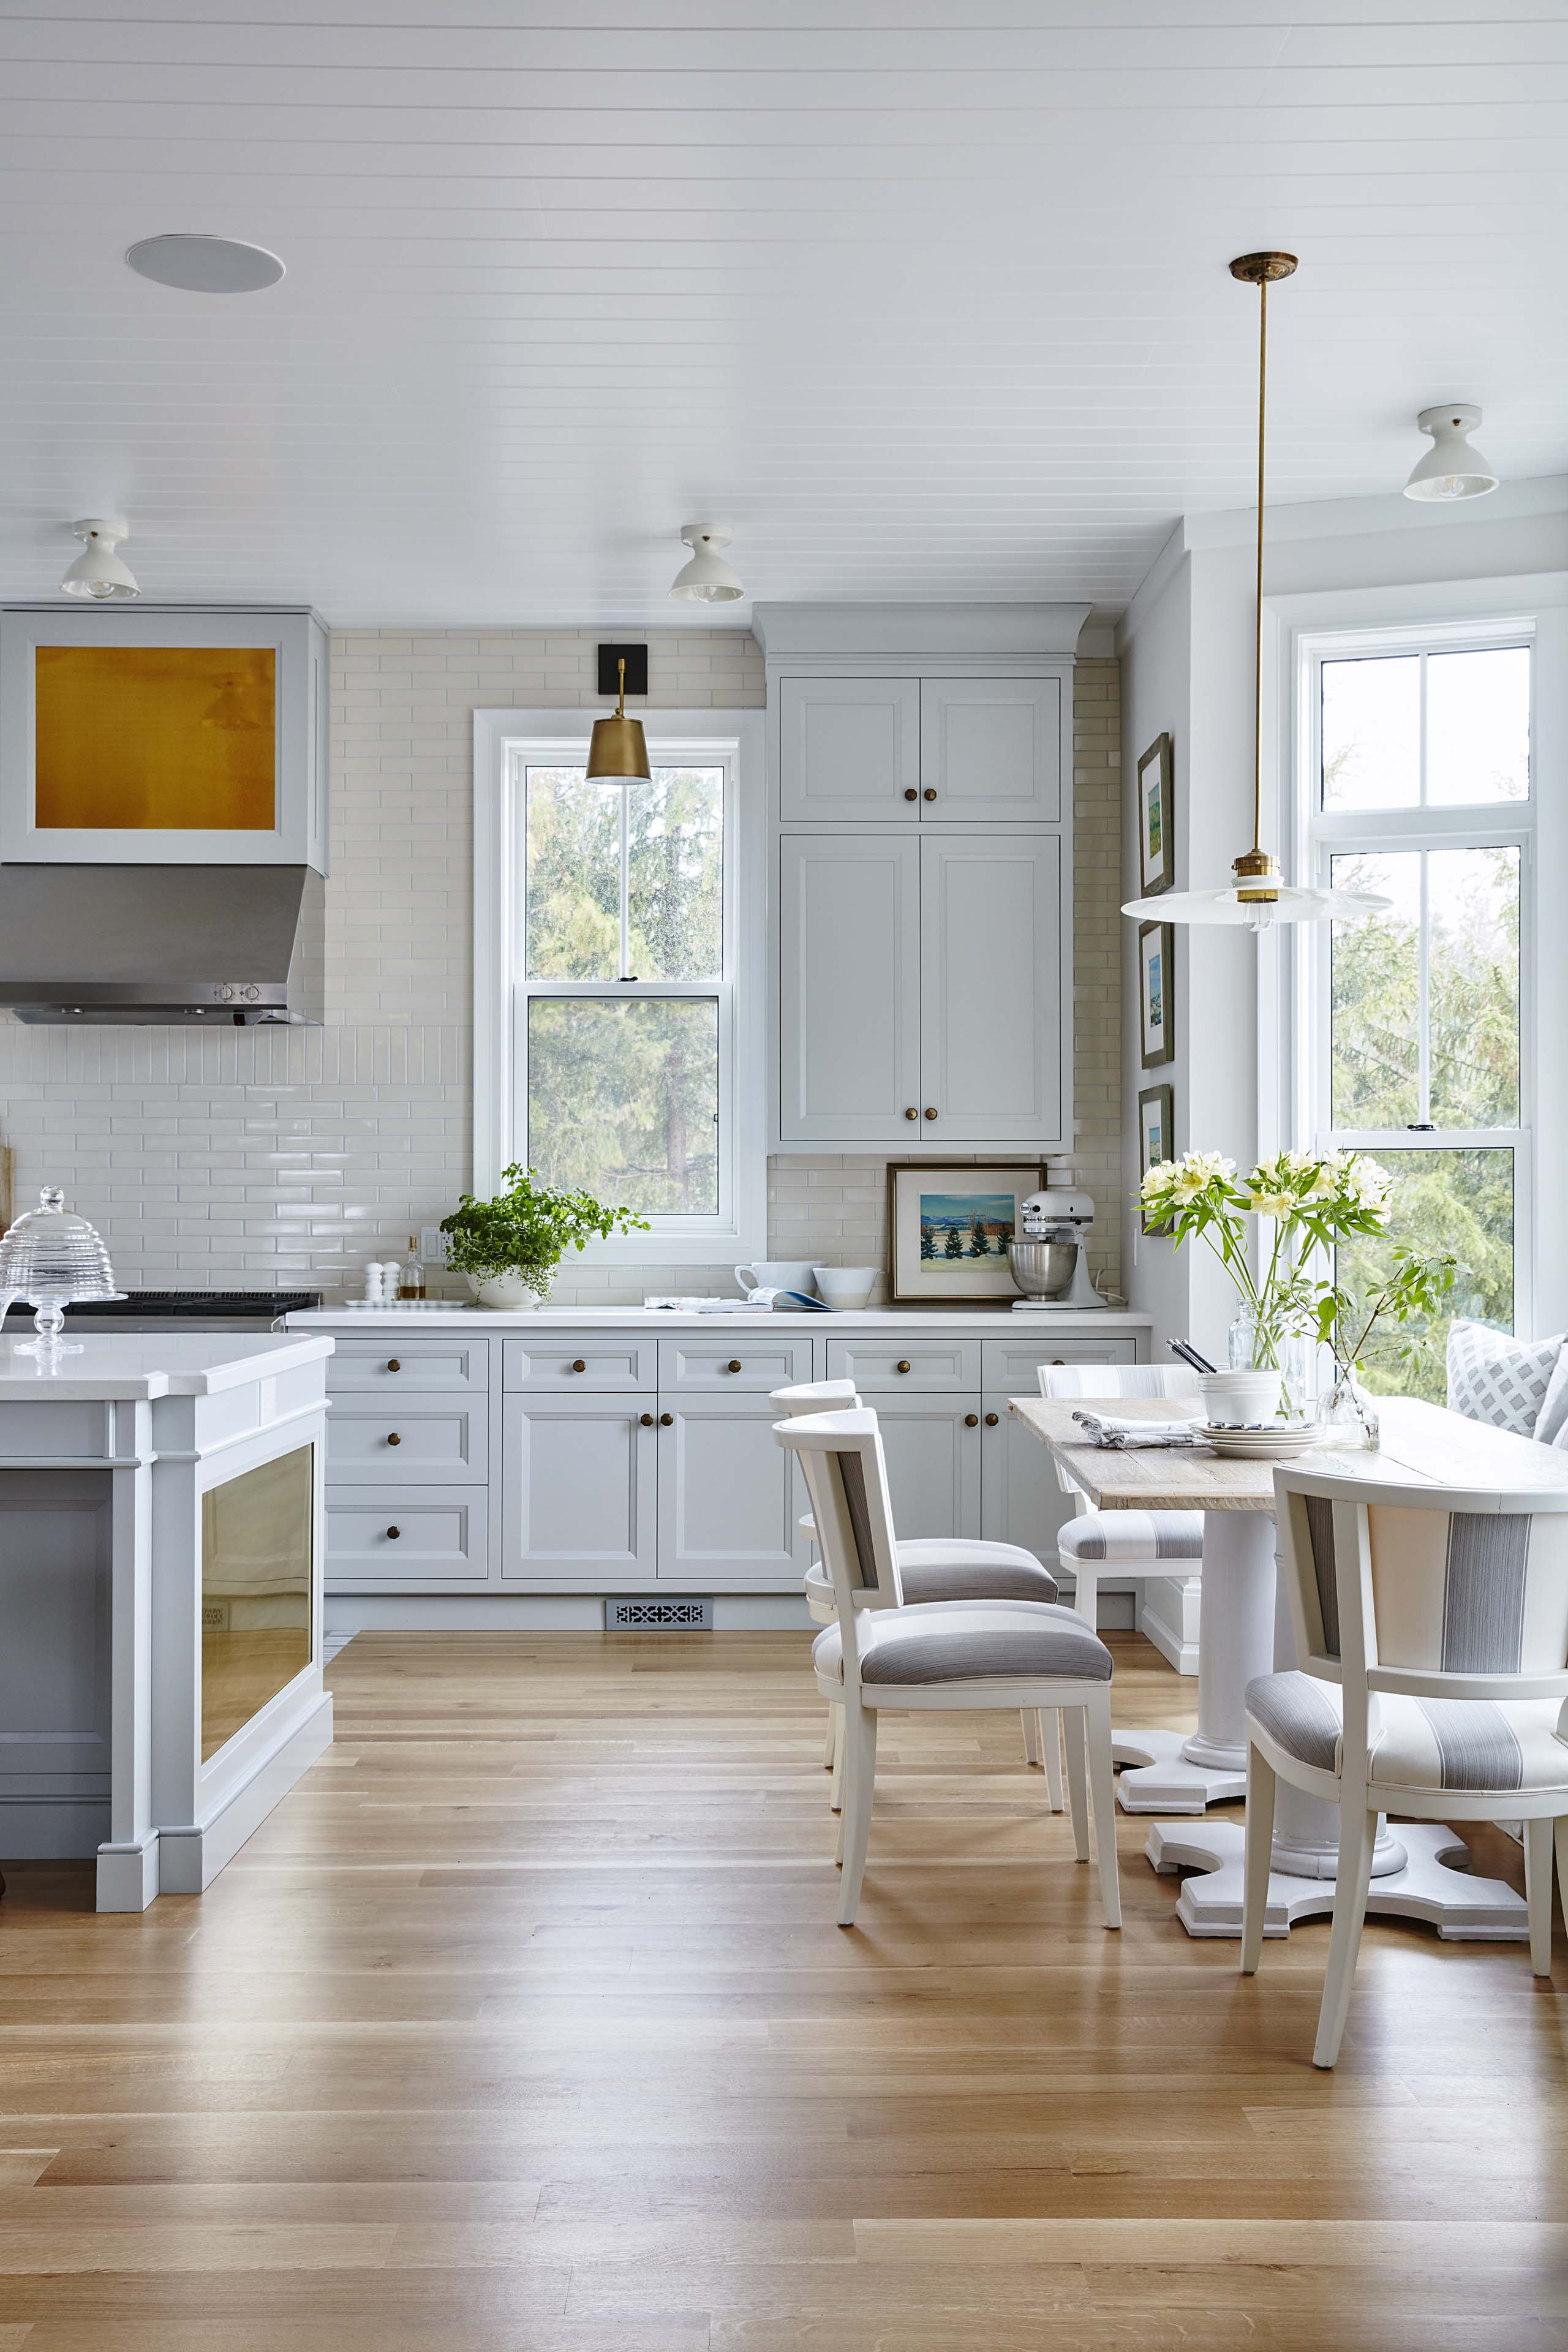 Gorgeous modern farmhouse kitchen with beadboard ceiling and grey Shaker style cabinets. #SarahRichardson #modernfarmhouse #farmhousekitchen #moderncountry